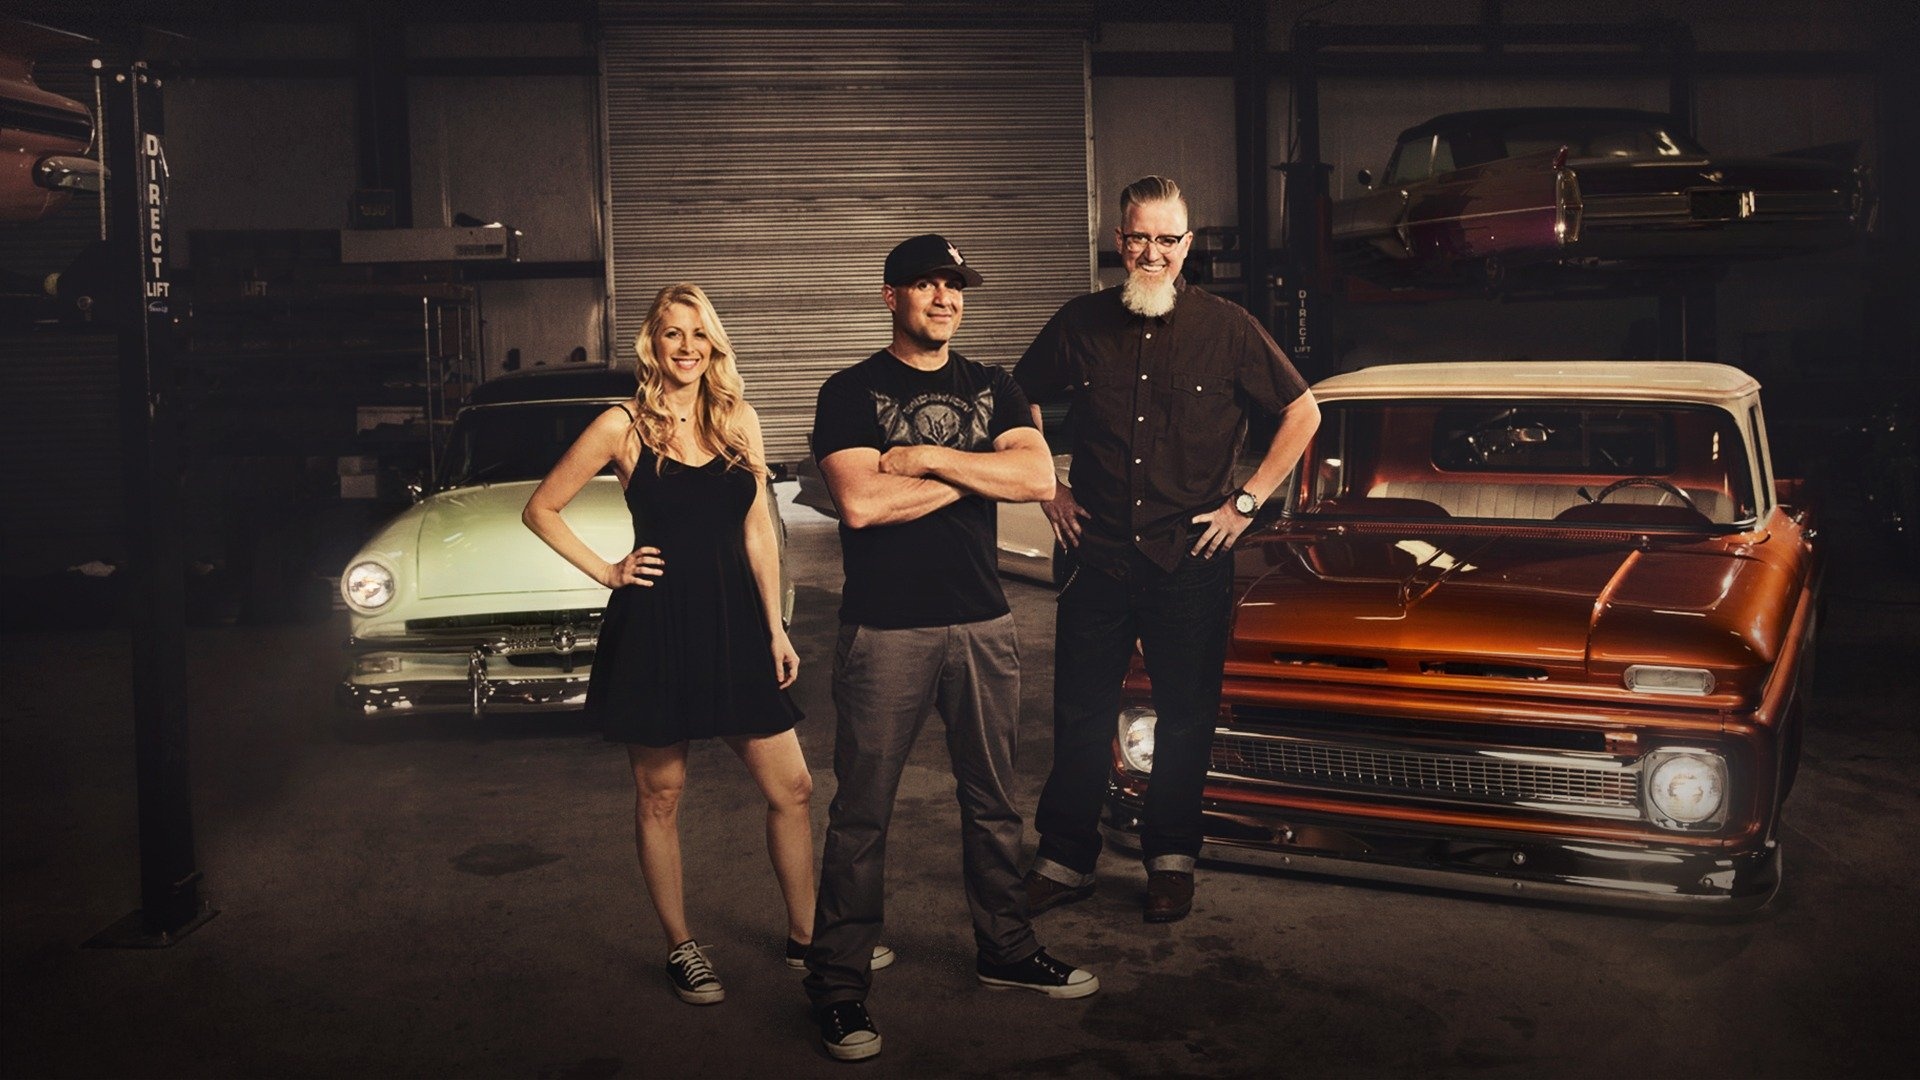 West Coast Customs Cars For Sale >> Iron Resurrection: Season Three Renewal and Premiere Announced by Velocity - canceled TV shows ...